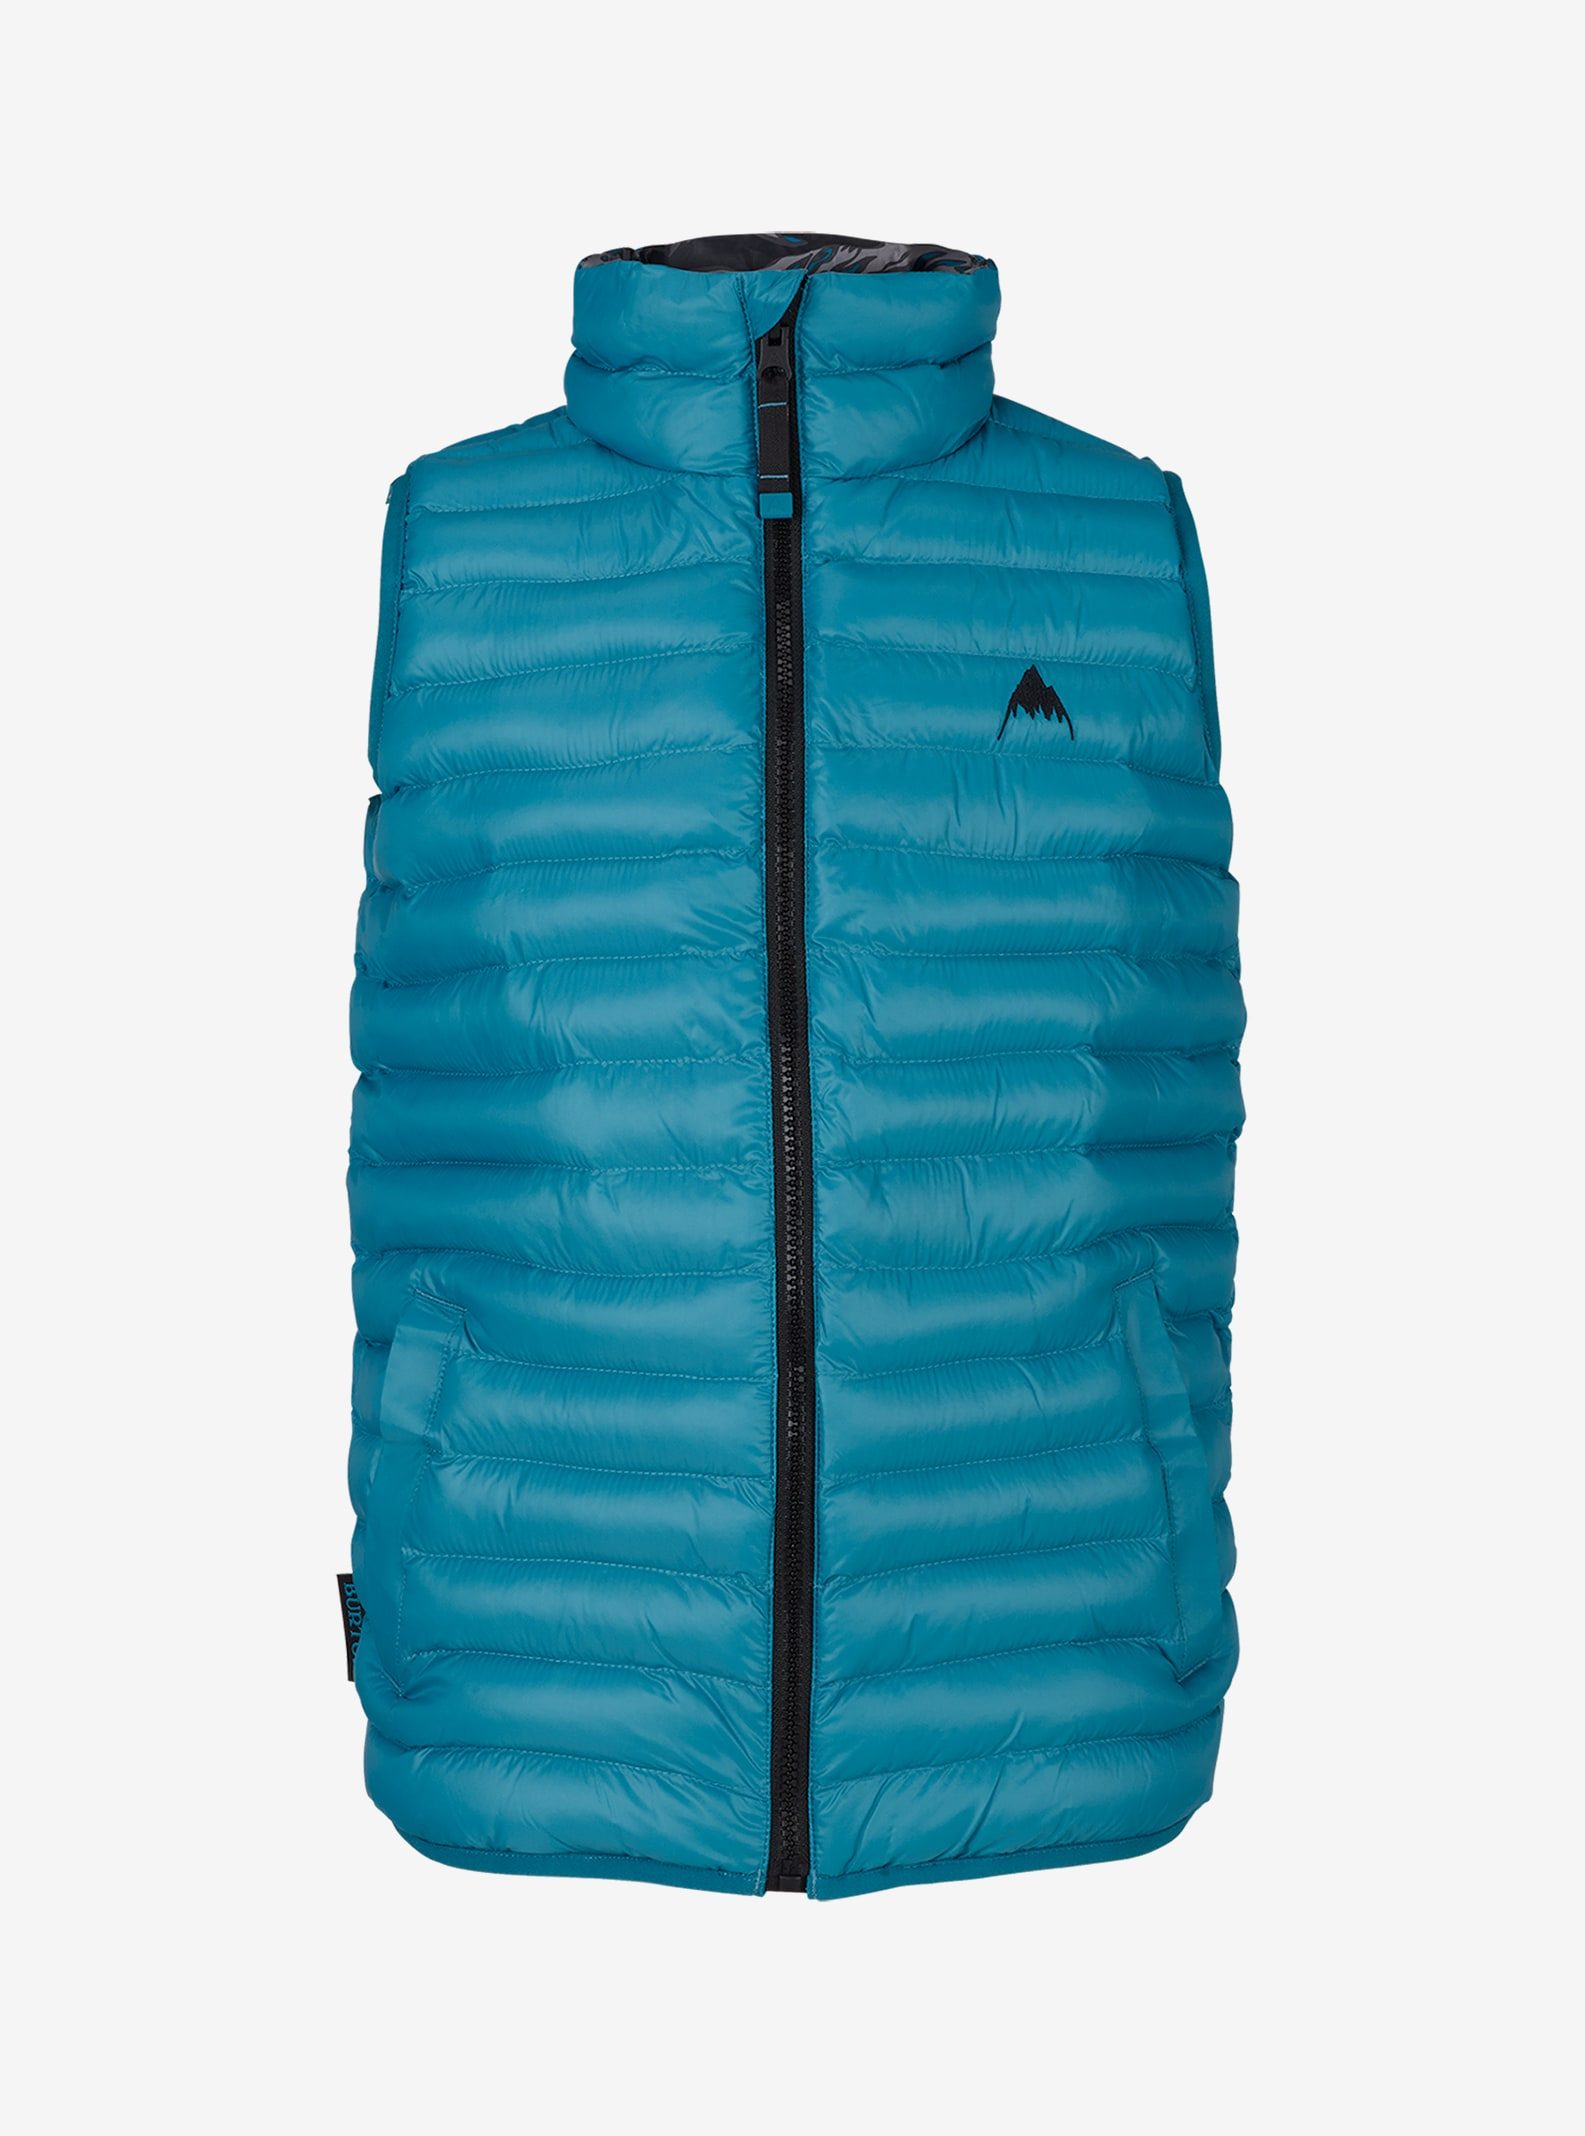 Kids' Burton Flex Puffy Vest shown in Mountaineer / Mountaineer Beast